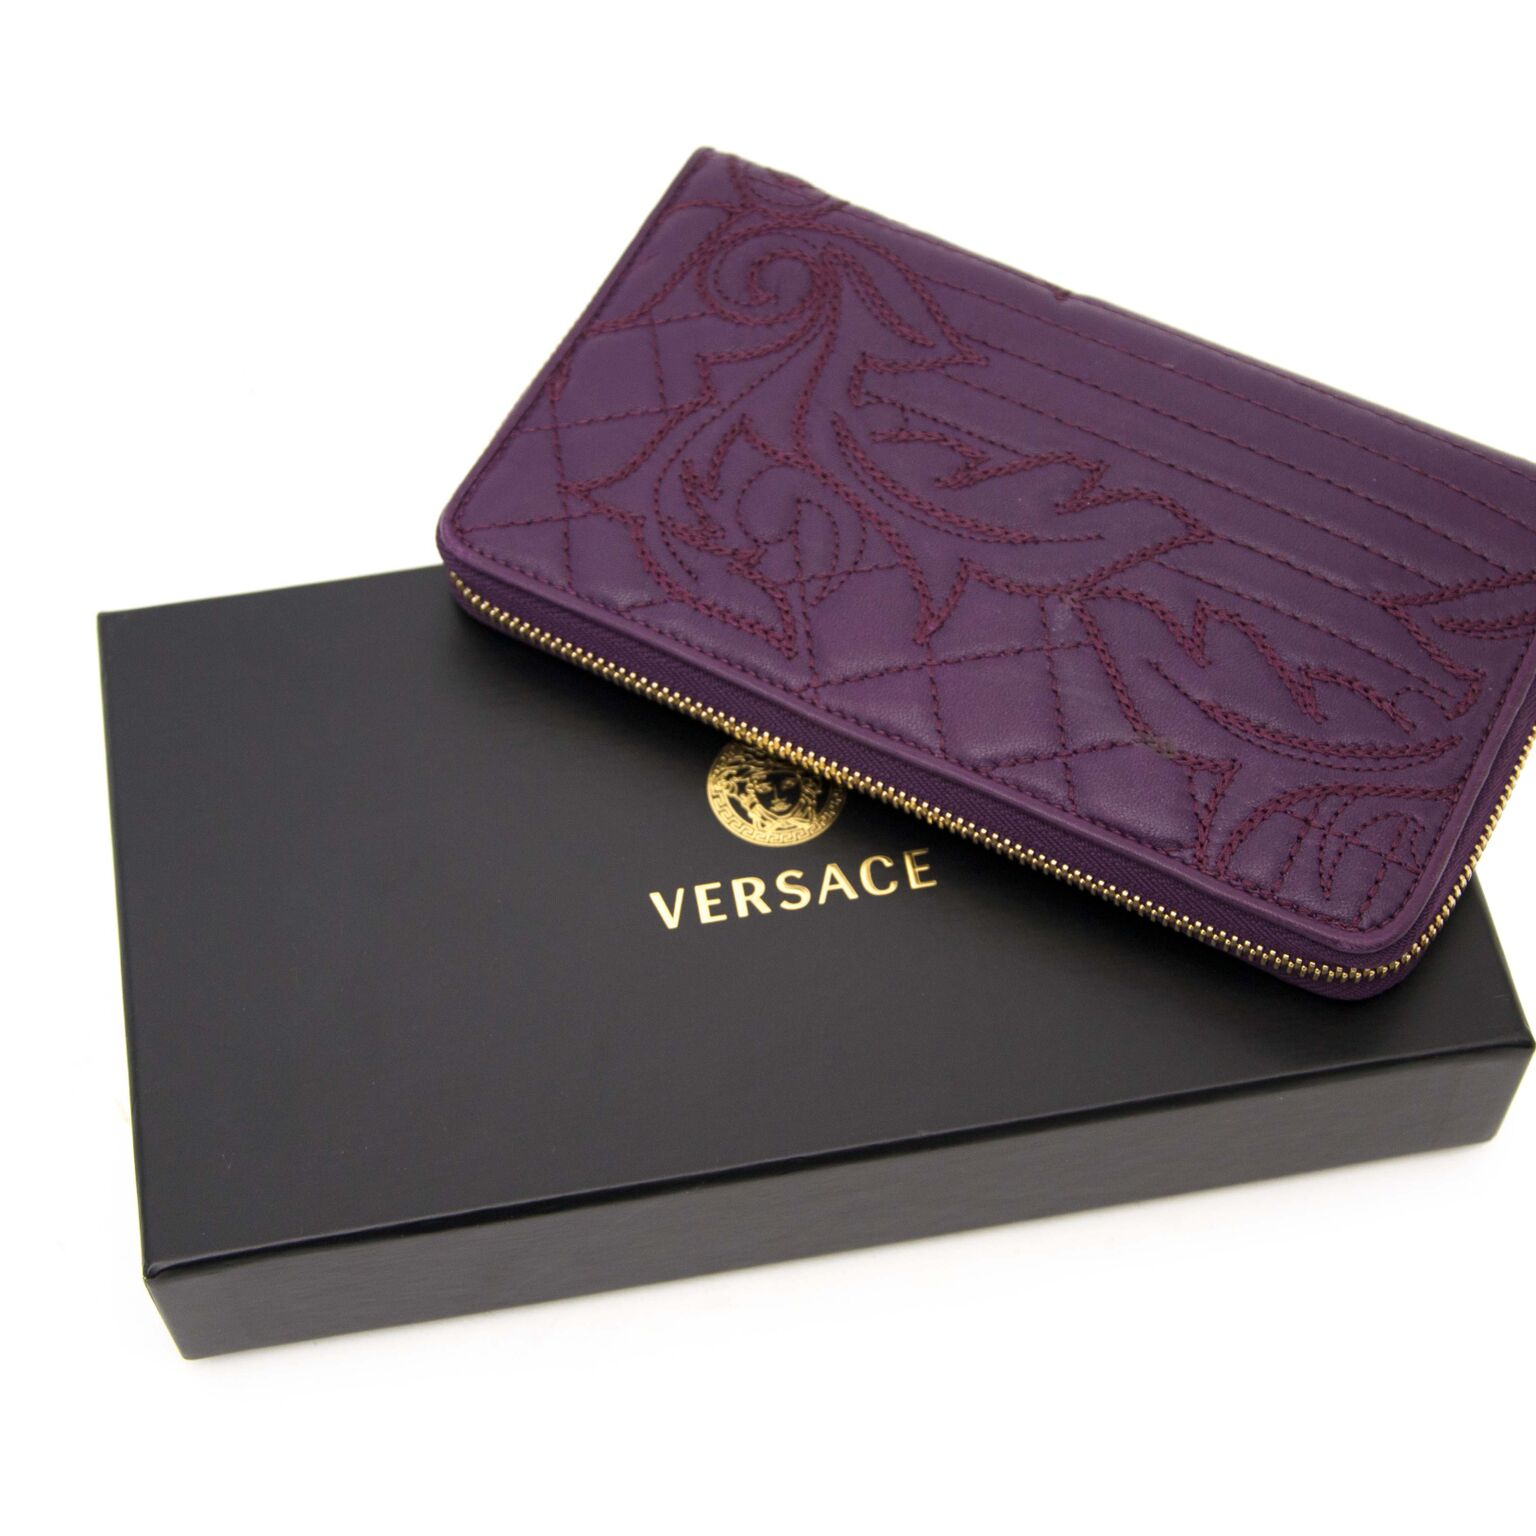 New Wallet from Versace in the color Burgundy